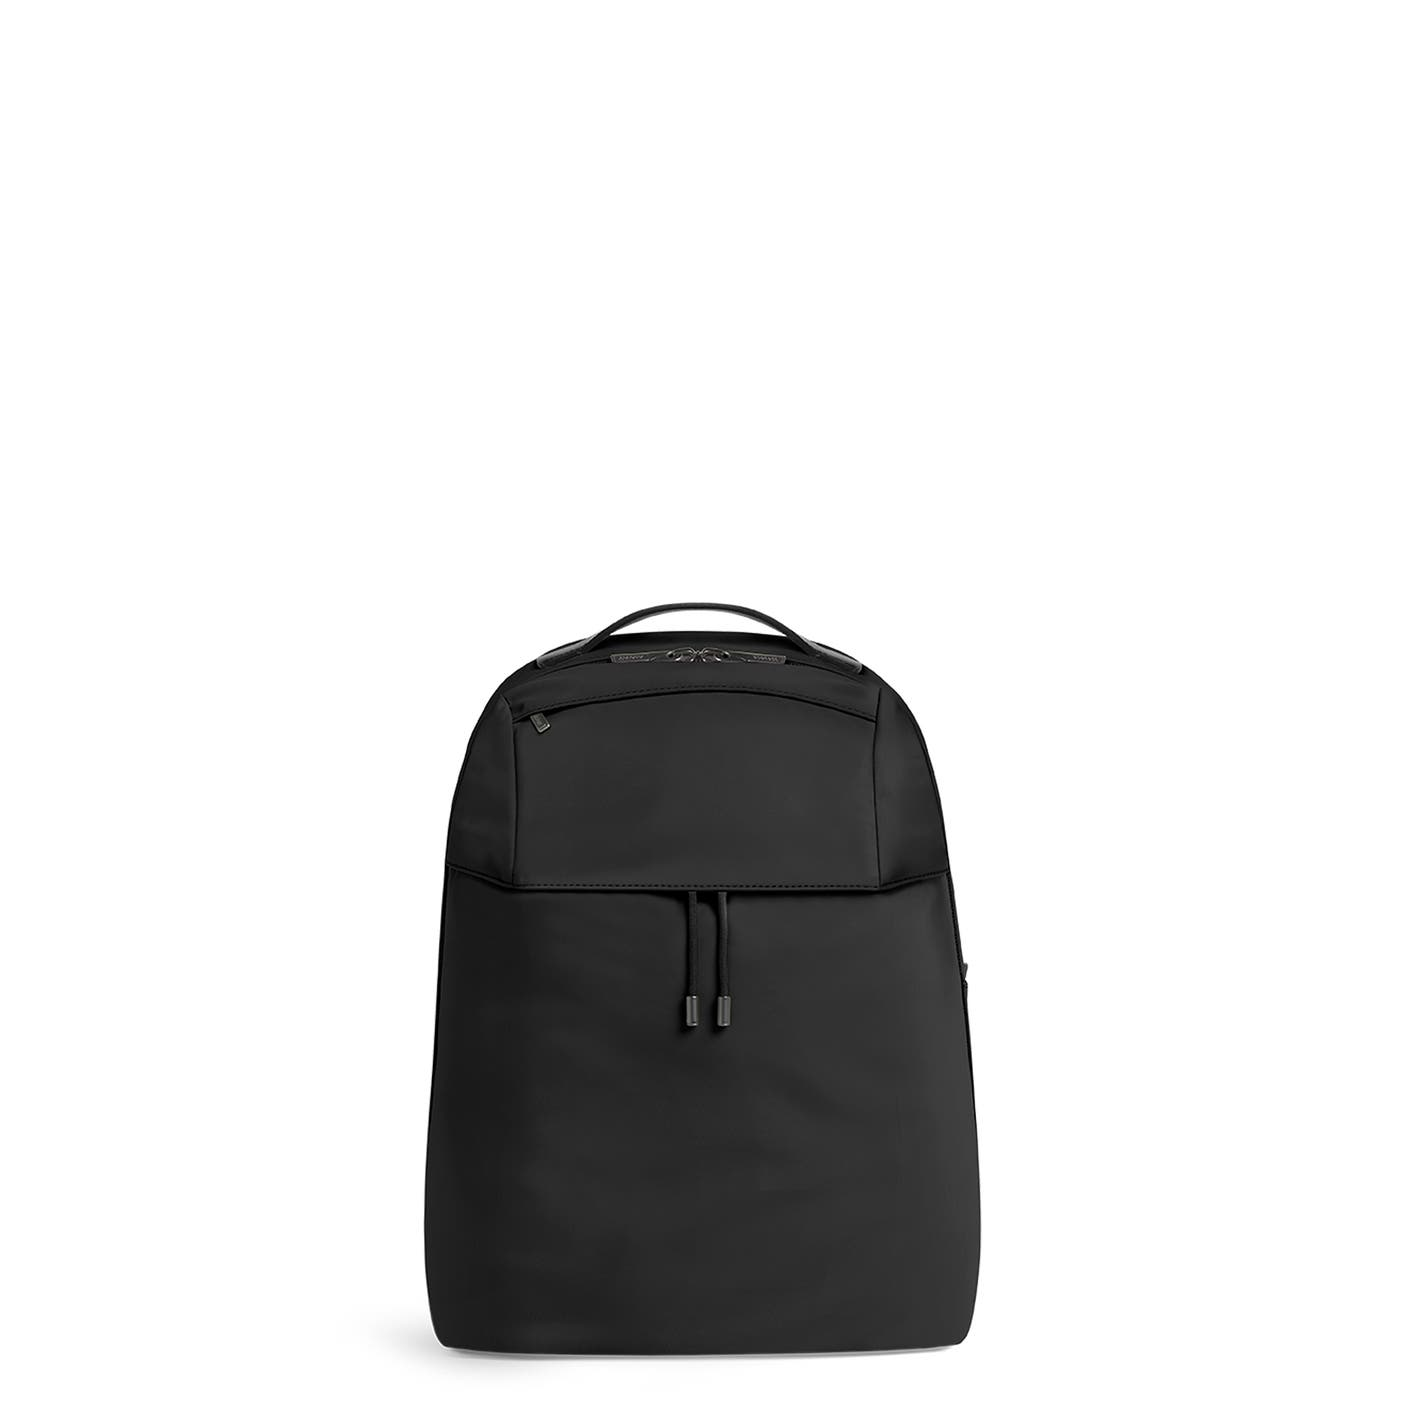 The Flap Backpack